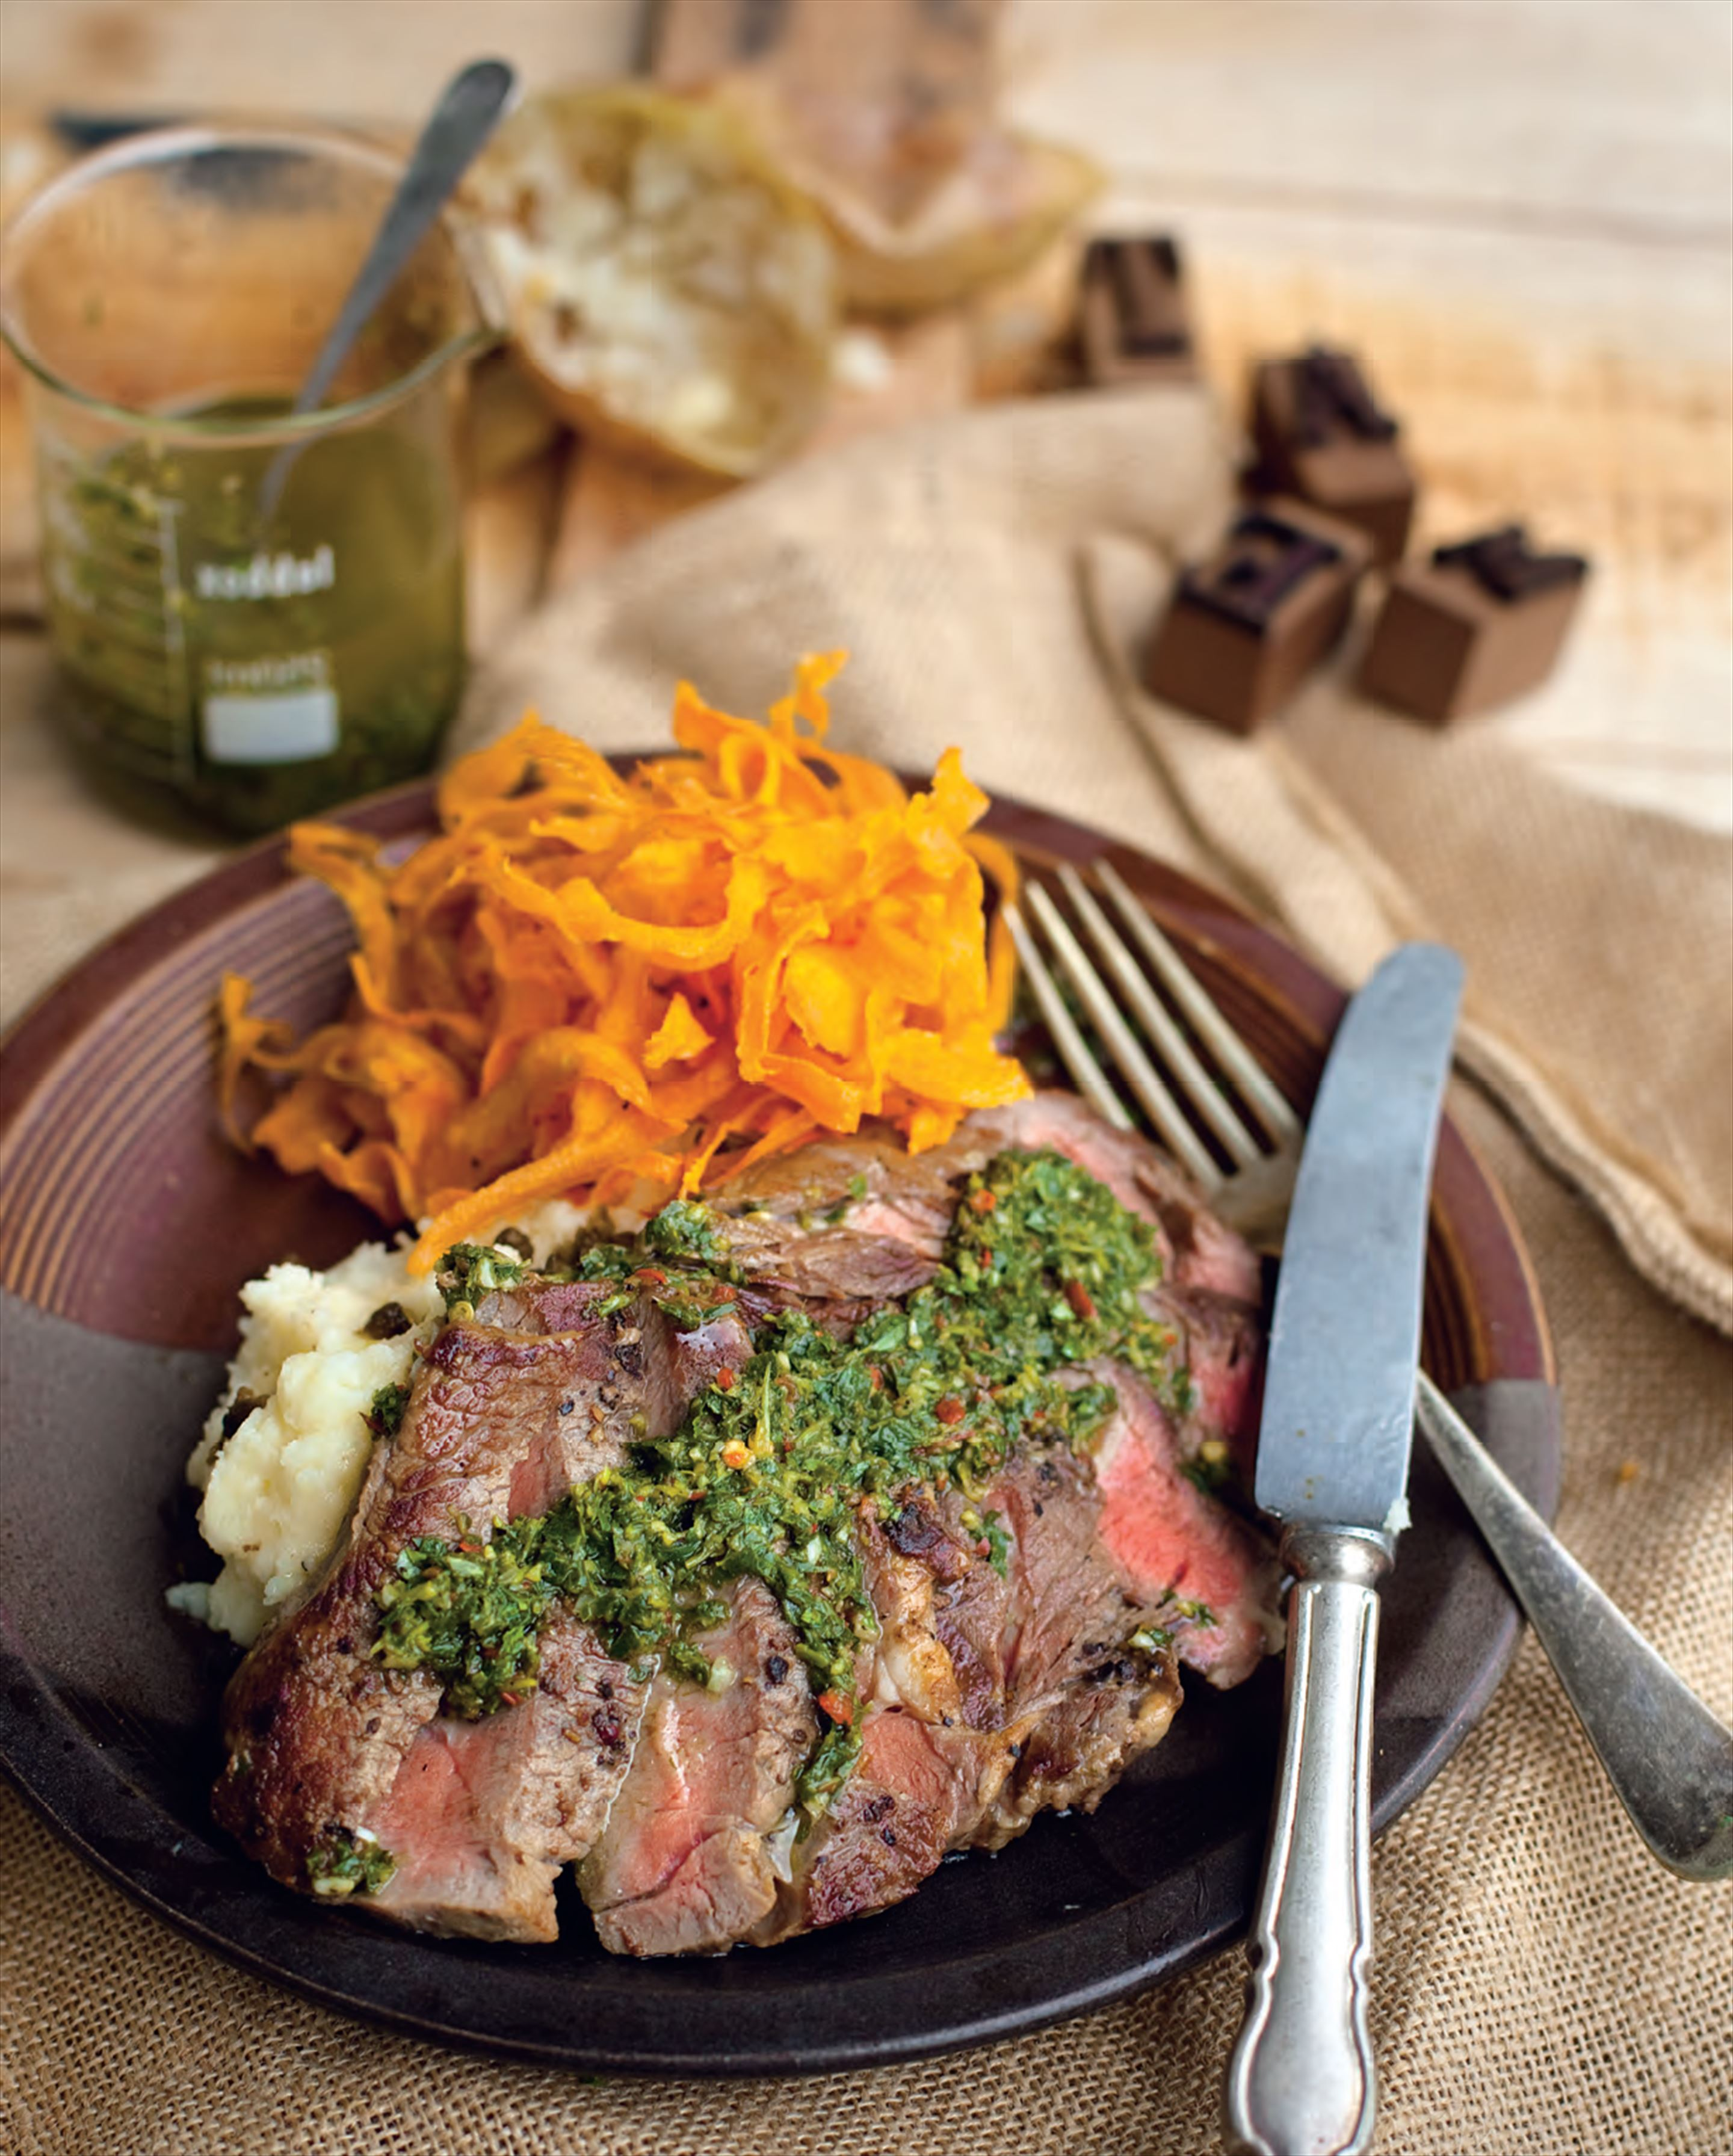 Seared Scotch fillets with chimichurri sauce & sweet potato chips